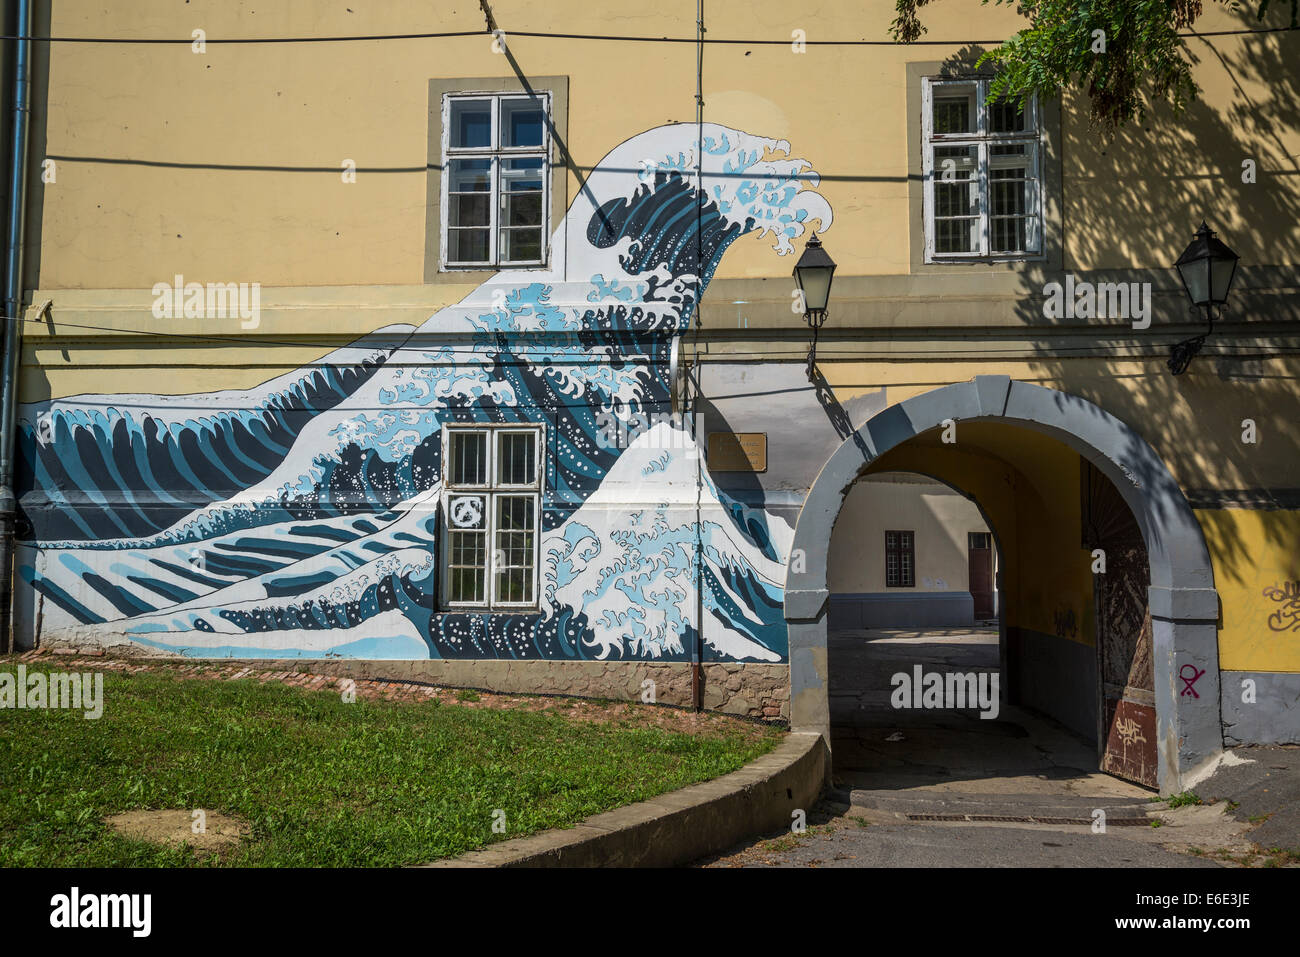 Hokusai Wave painted at the entrance of Grammar School, Tvrdja, Osijek, Slavonia, Croatia - Stock Image